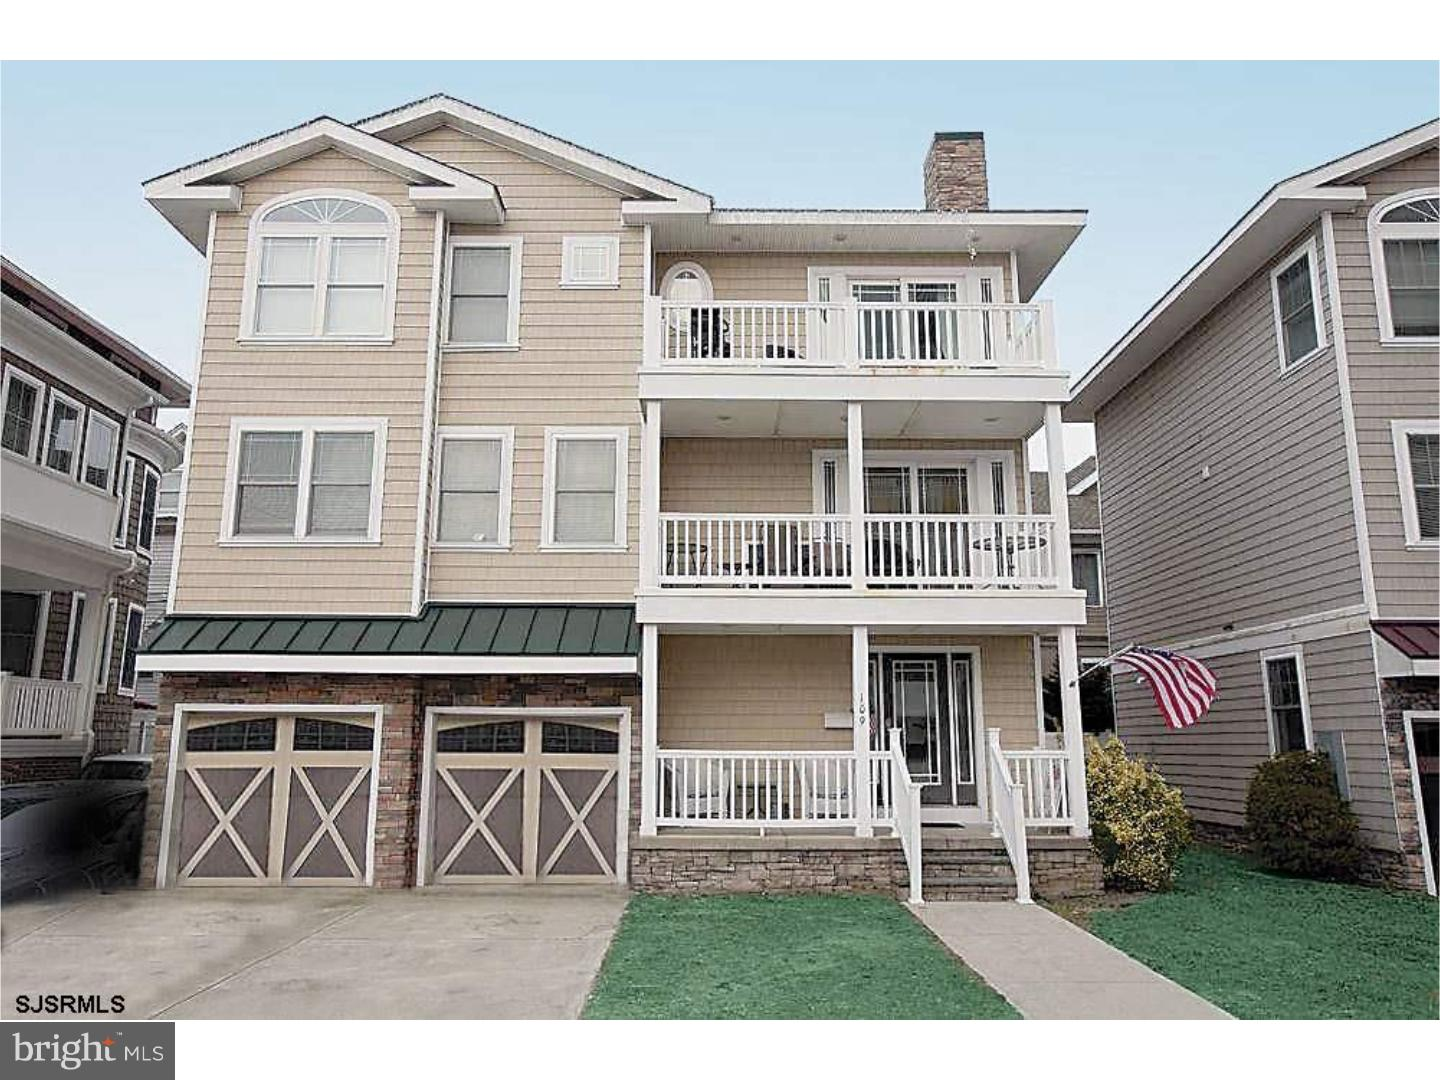 109 S FRANKFORT AVENUE, VENTNOR CITY, NJ 08406